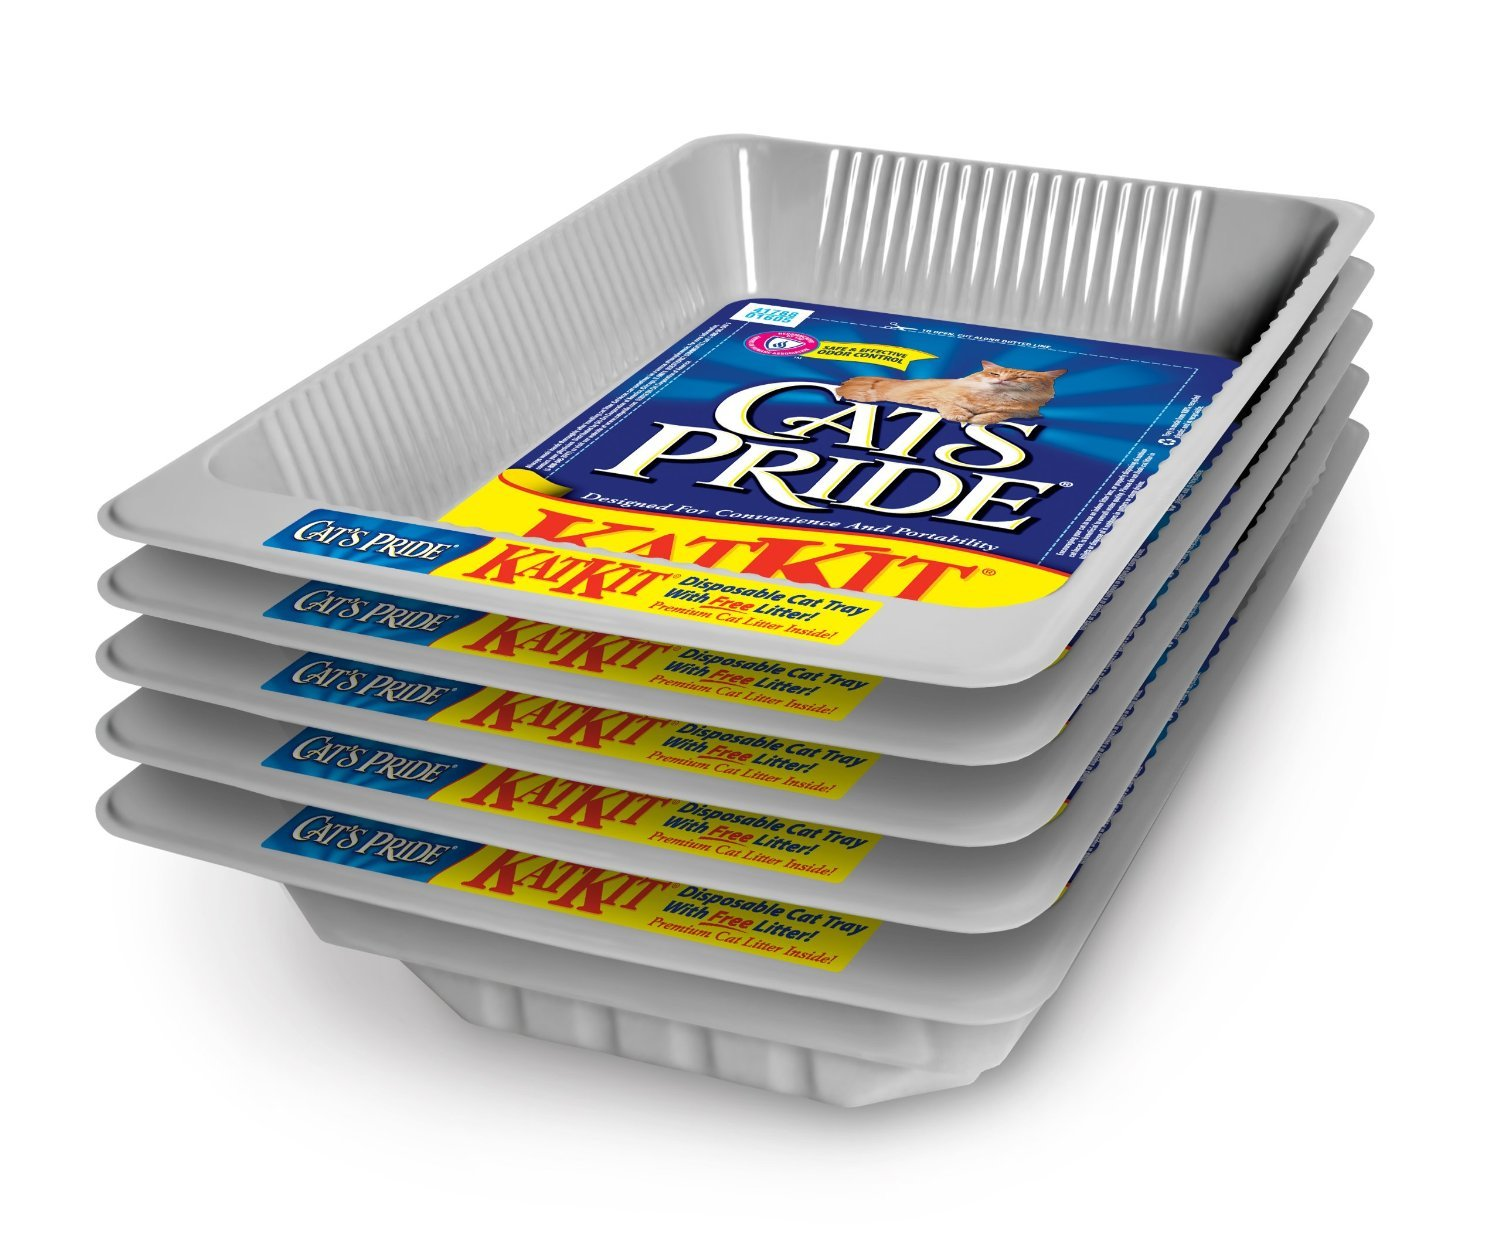 Cat's Pride, Disposable Litter Pan, Includes Pan & Litter All In One (Pack of 5)